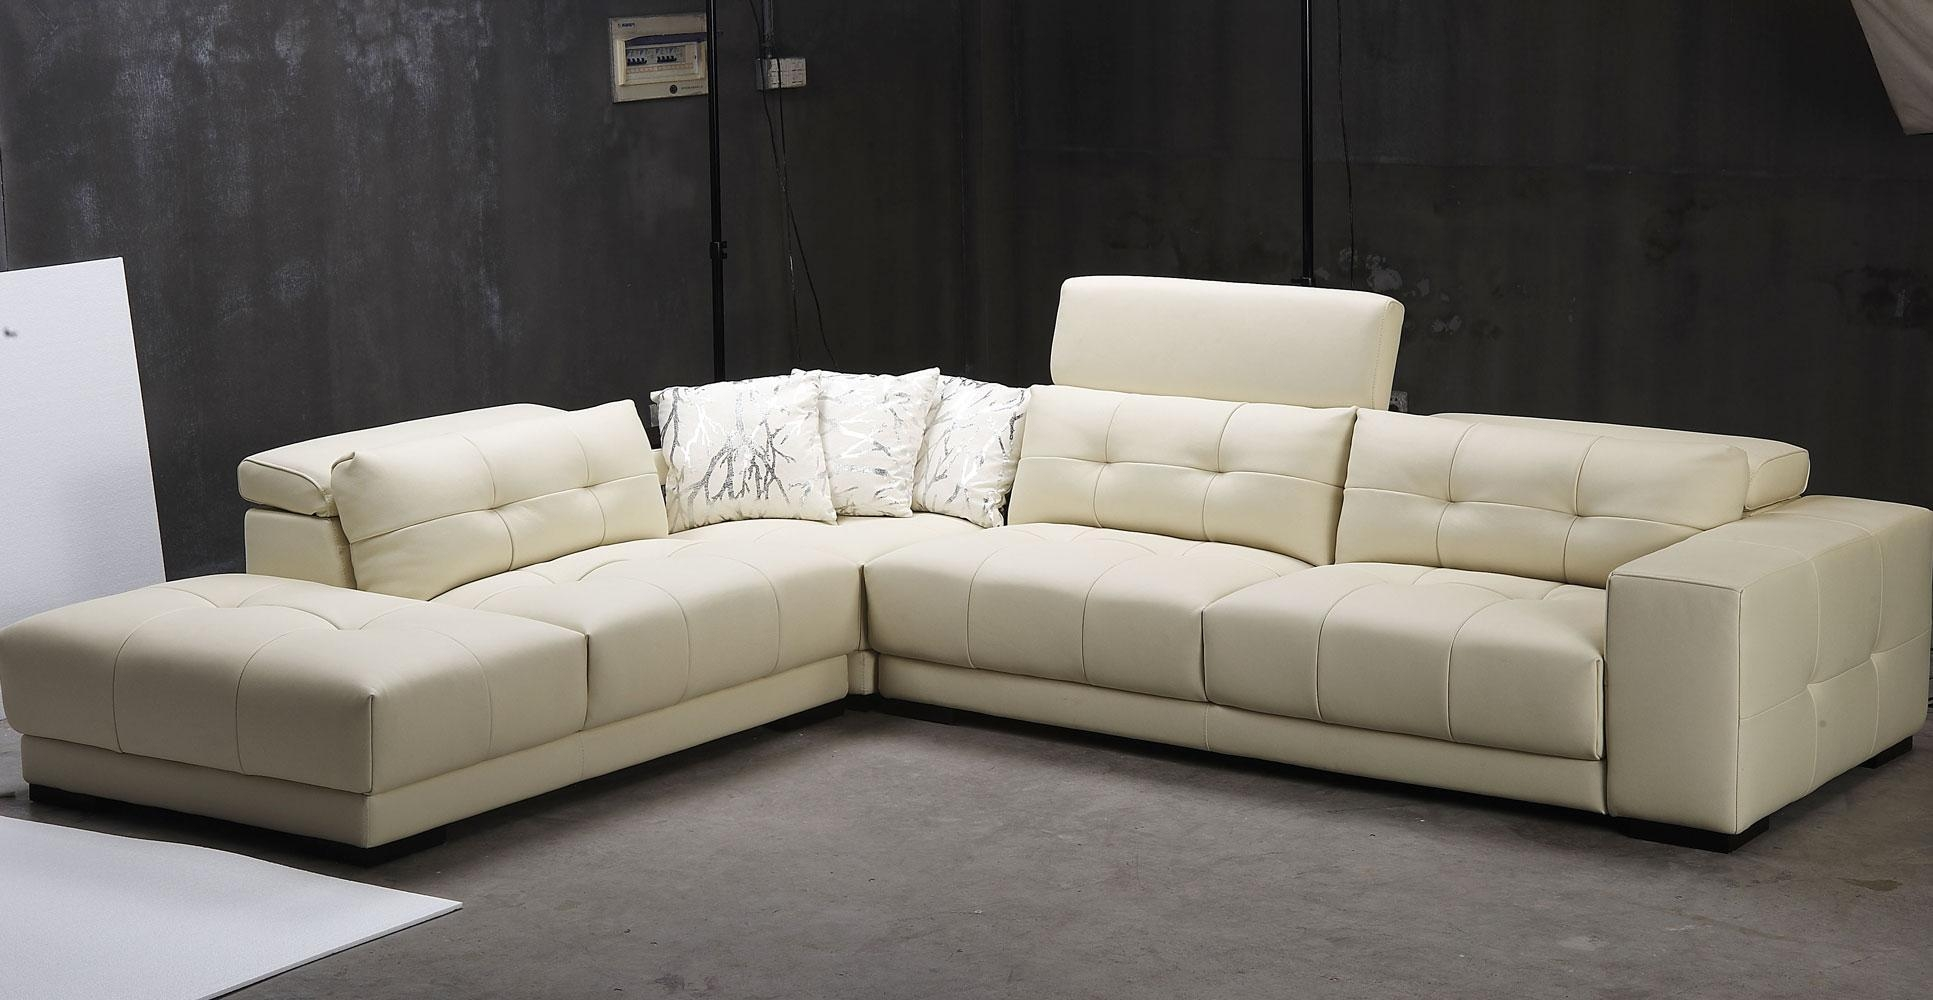 Best Modern 3 Piece White Leather Sectional Sleeper Sofa With Within 3 Piece Sectional Sleeper Sofa (Image 7 of 15)